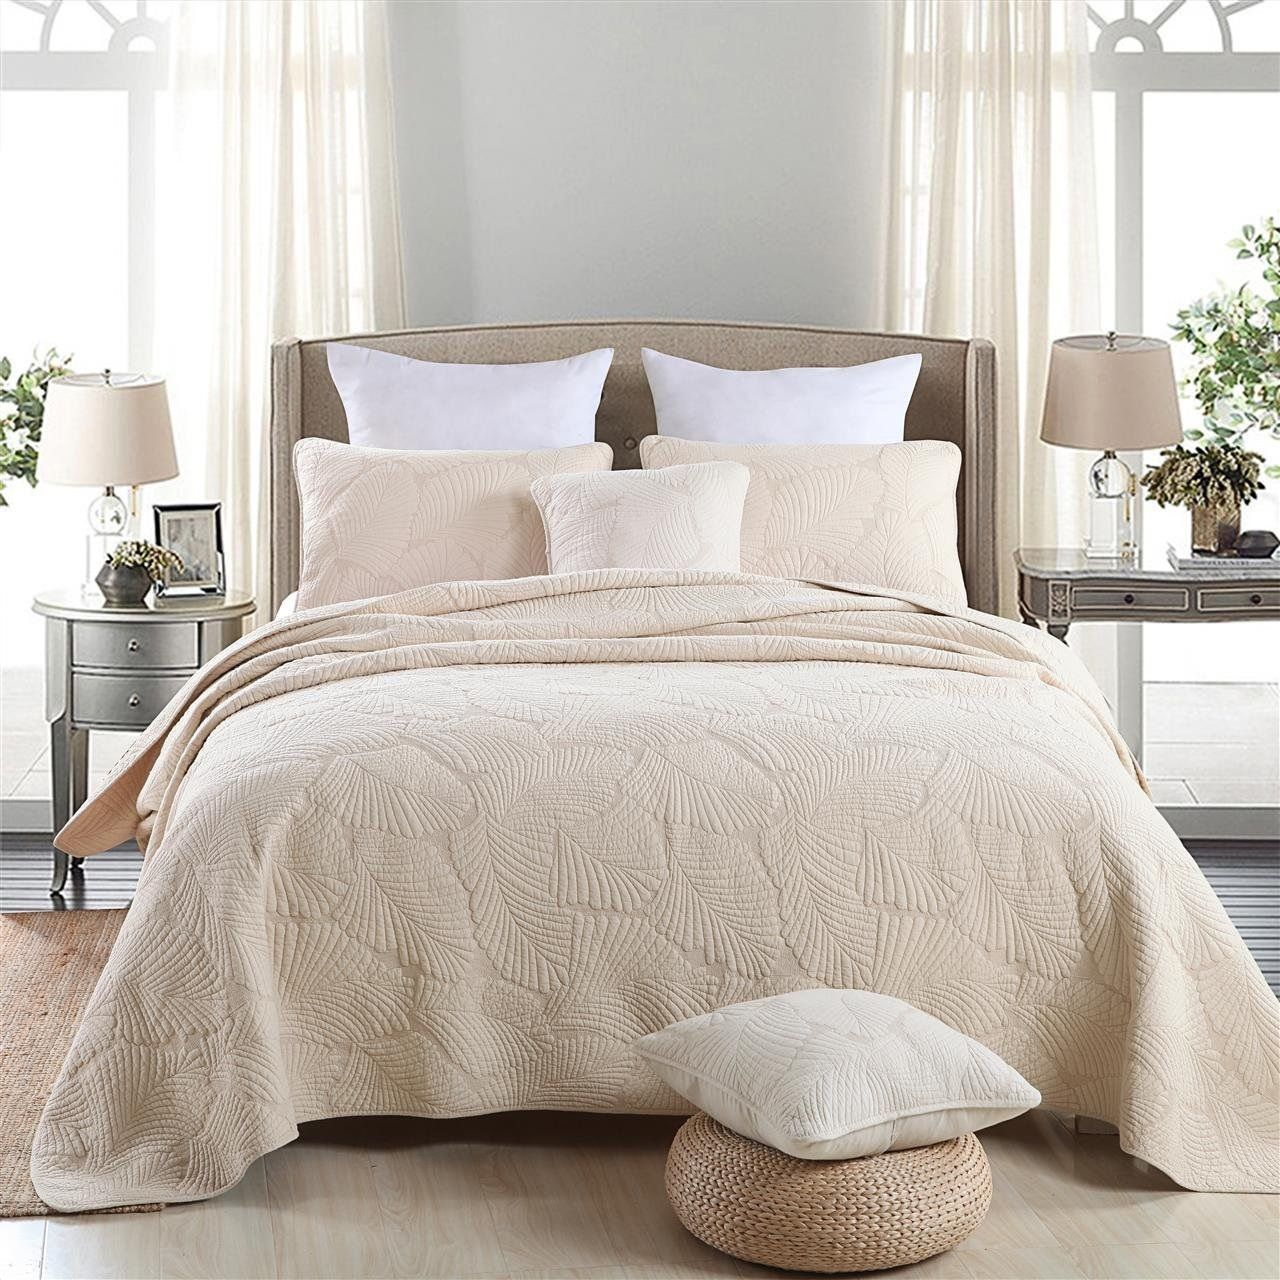 colors headboard red paint full bedroom comforter white sets gray and wall bedding with luxury quilt quilts design queen comforters